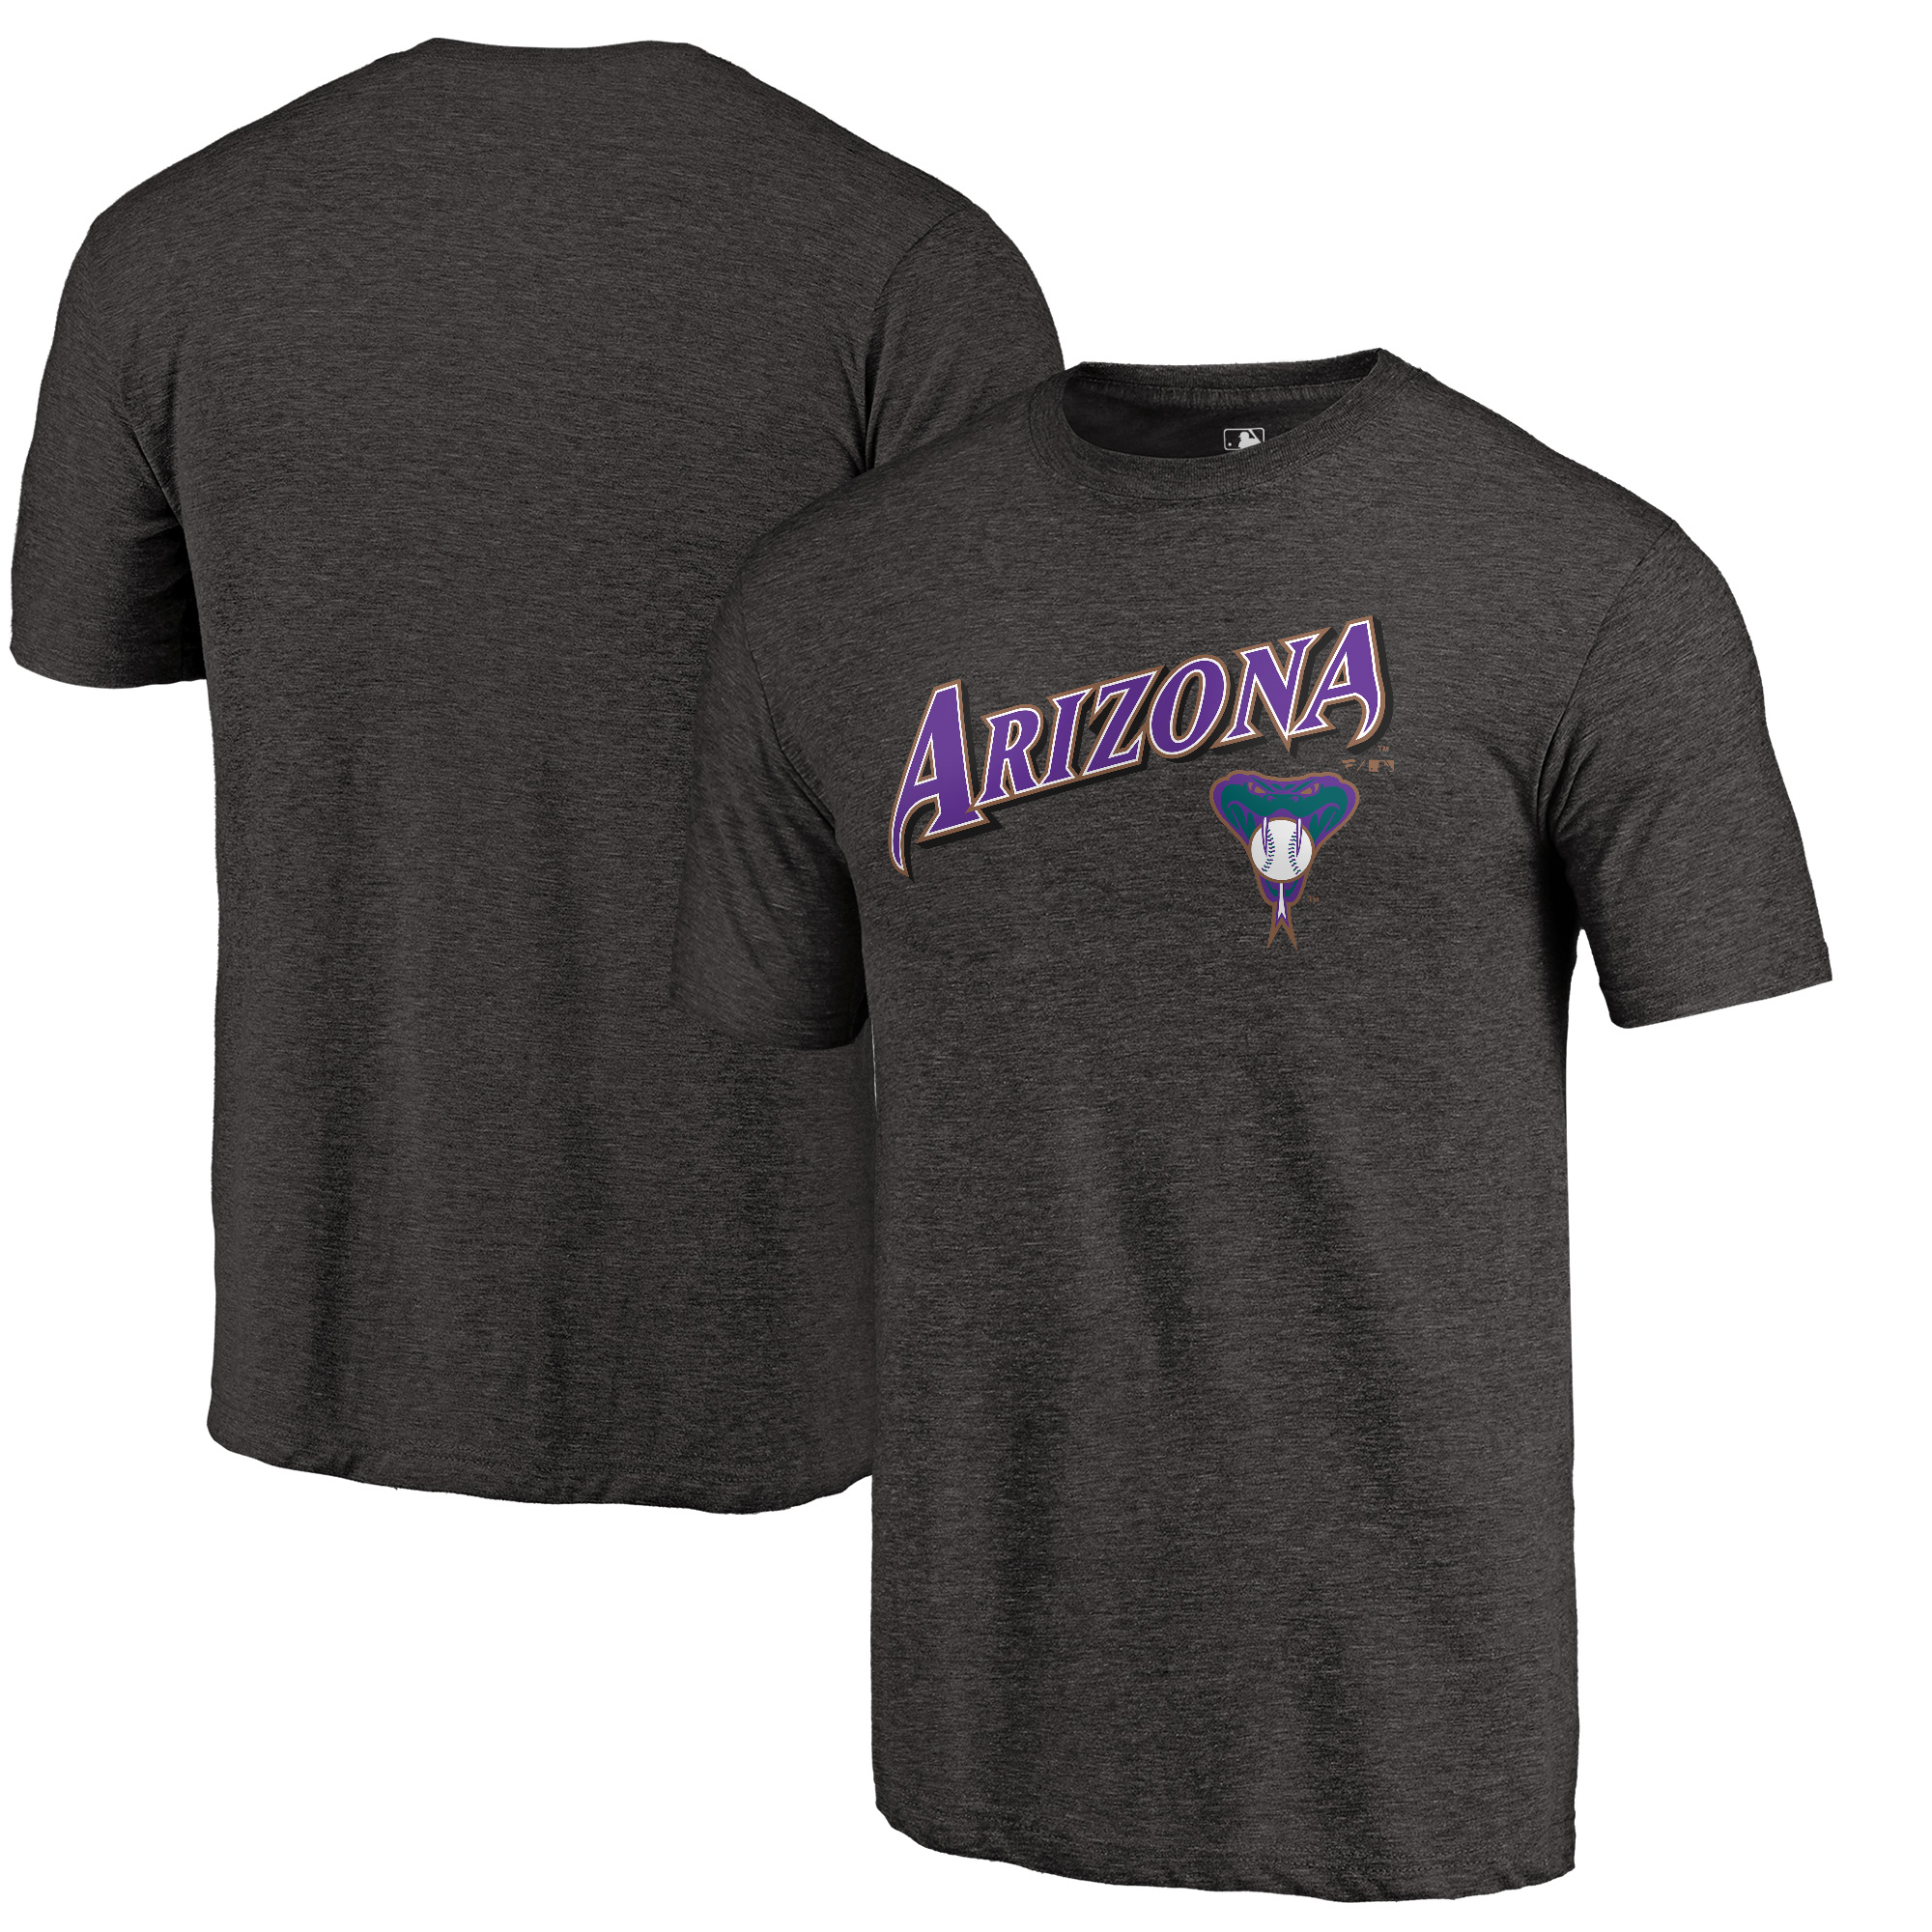 Arizona Diamondbacks Fanatics Branded Vintage Cooperstown Collection Wahconah Tri-Blend T-Shirt - Heathered Black